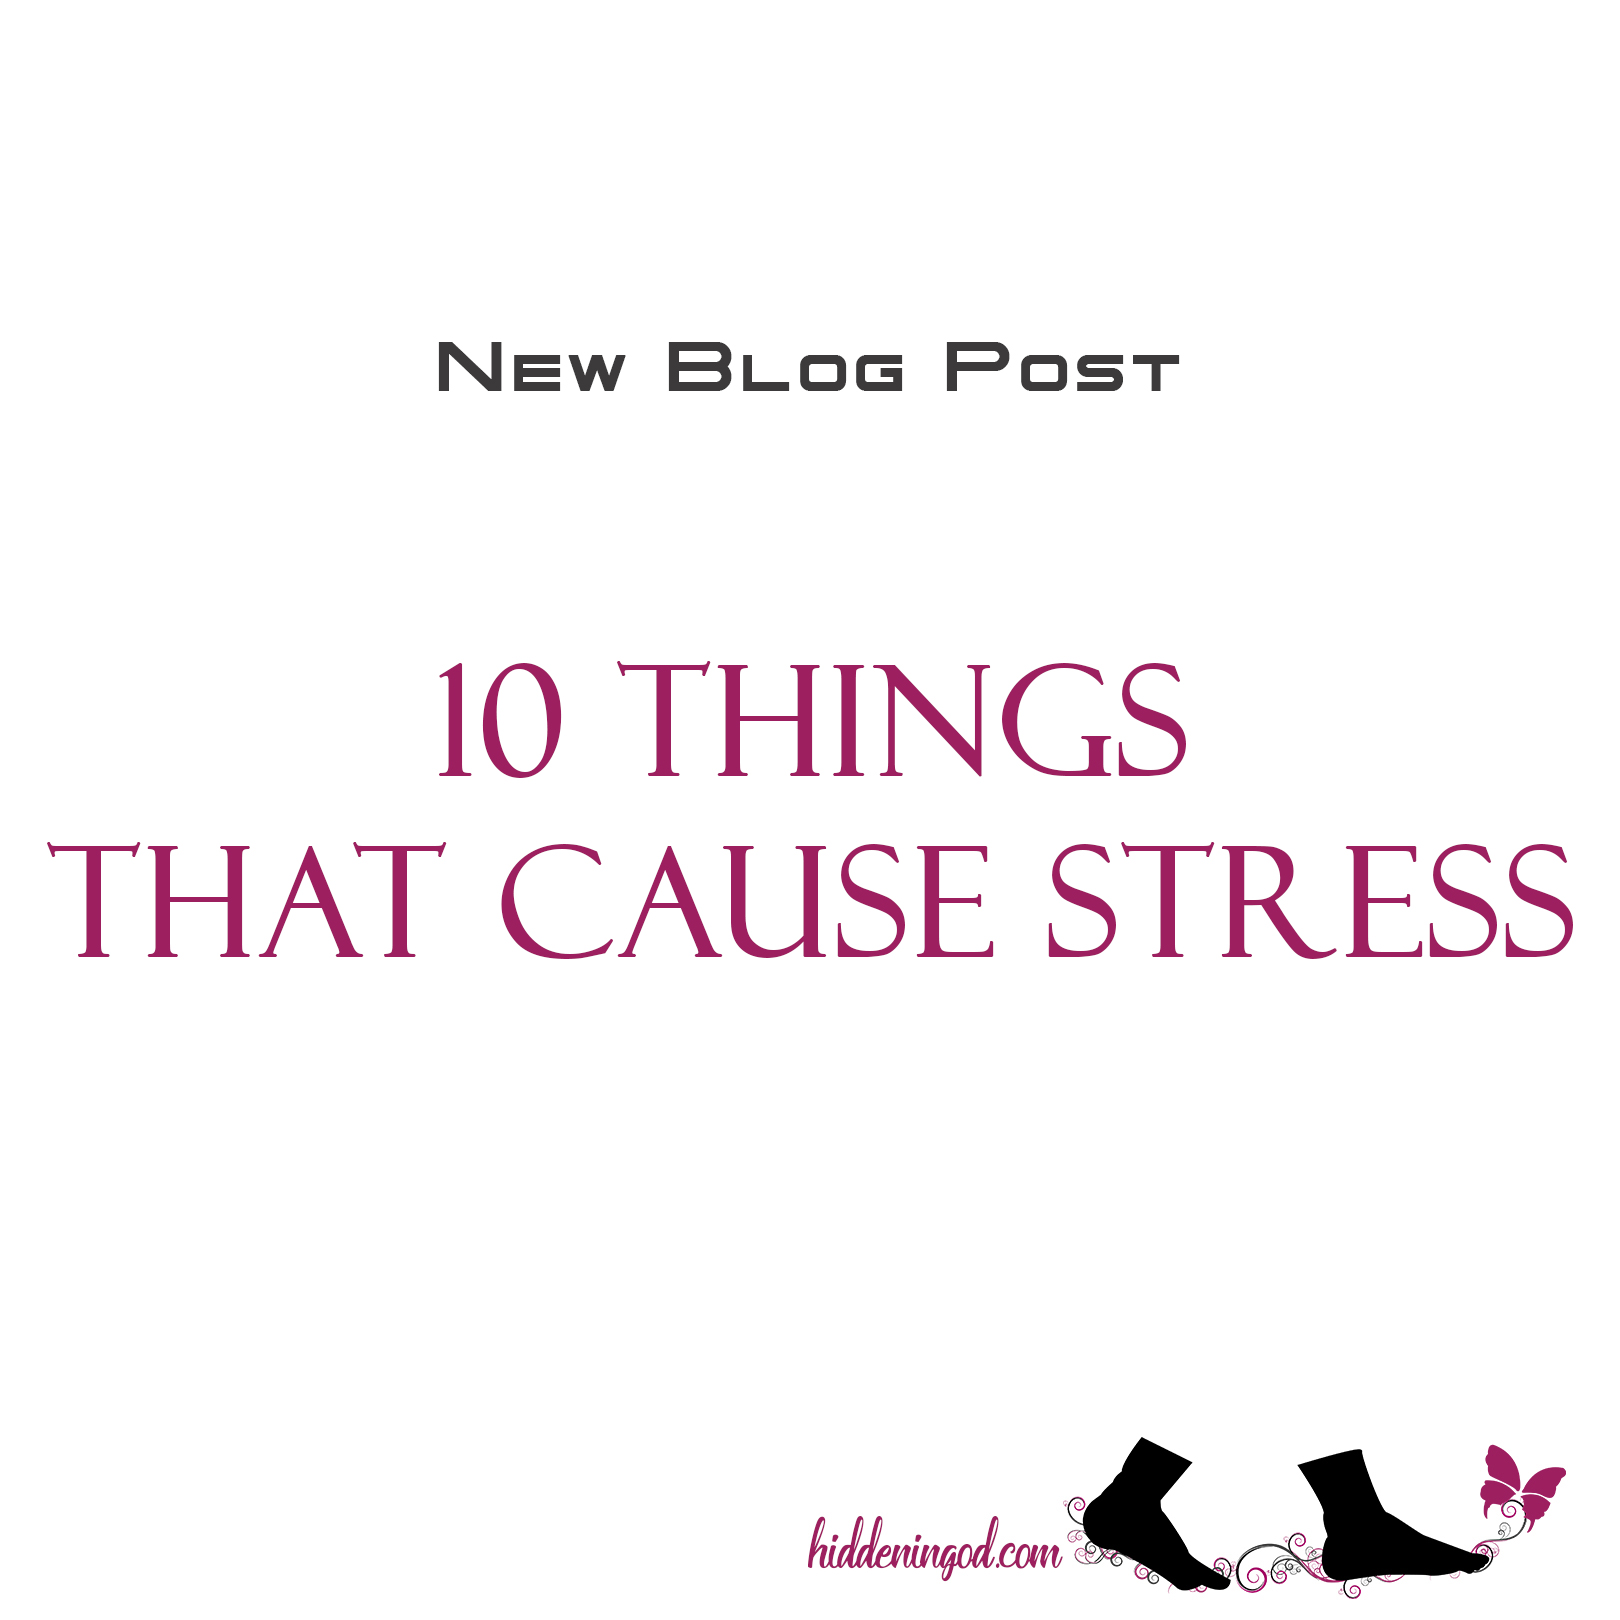 10 Things That Cause Stress